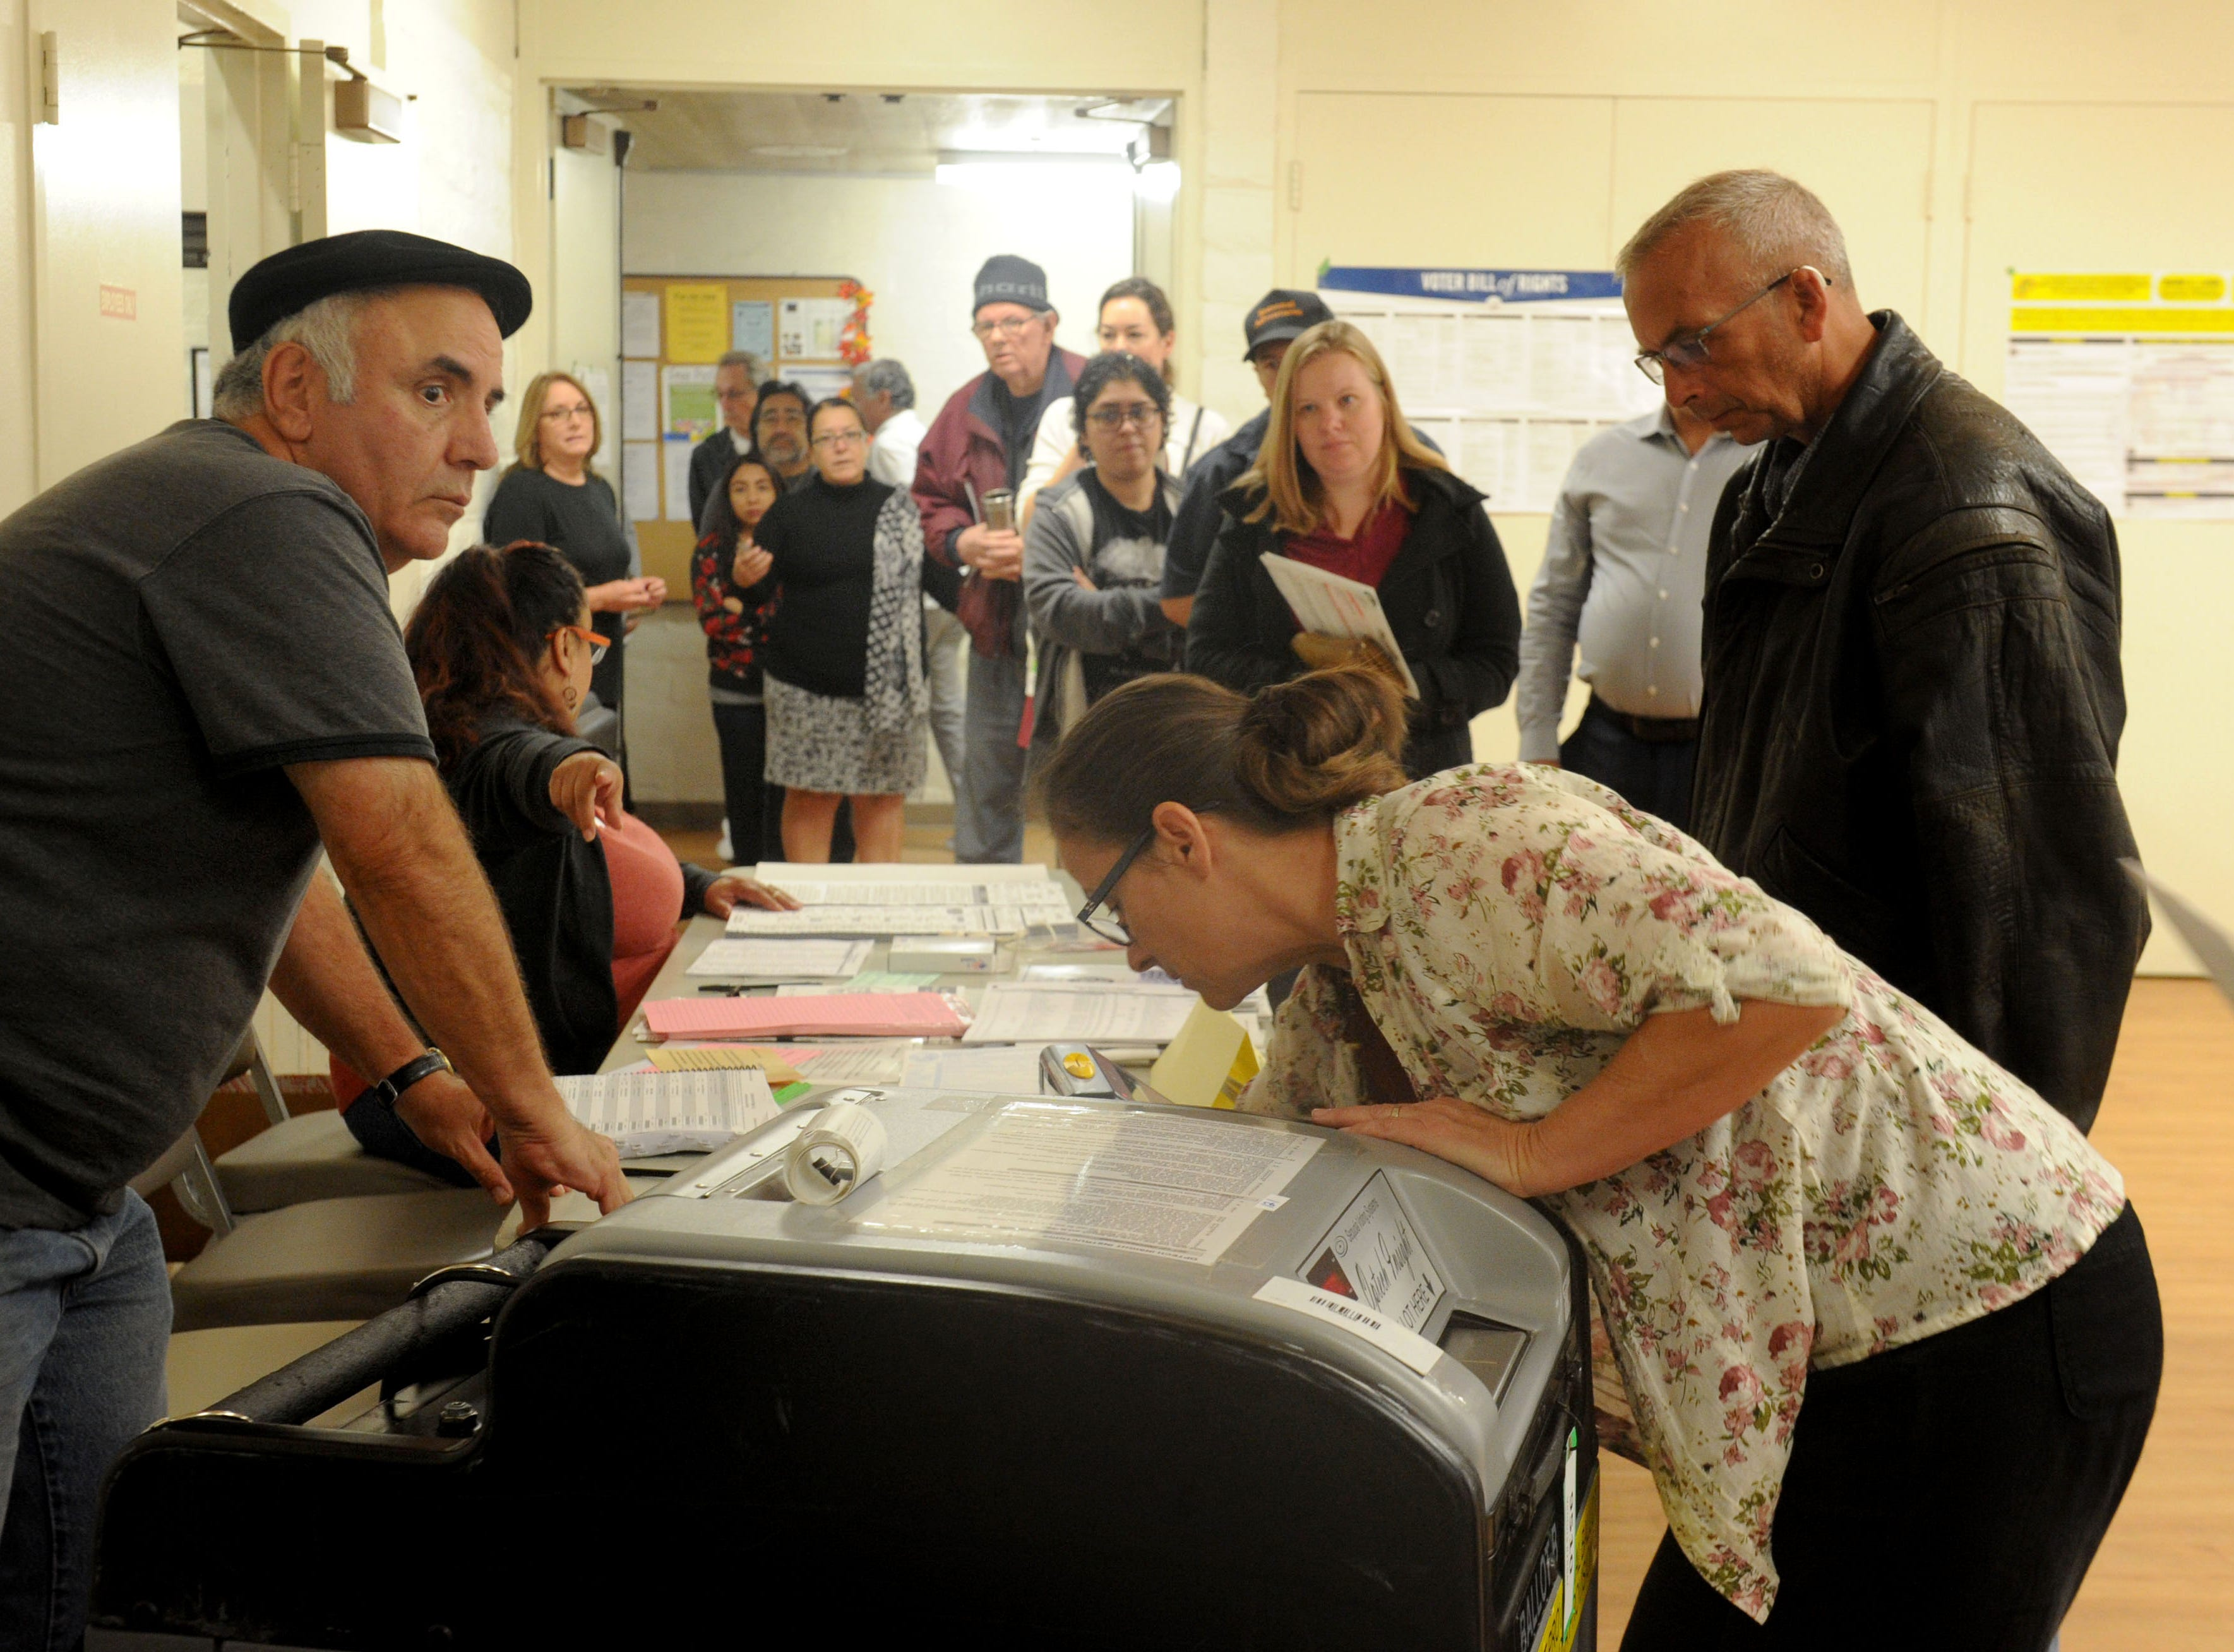 Richard Goad, left) volunteer and Sherry Cargnino (right) inspector start the voting at Ventura Avenue Adult Center. The center had a line of about 20 people.